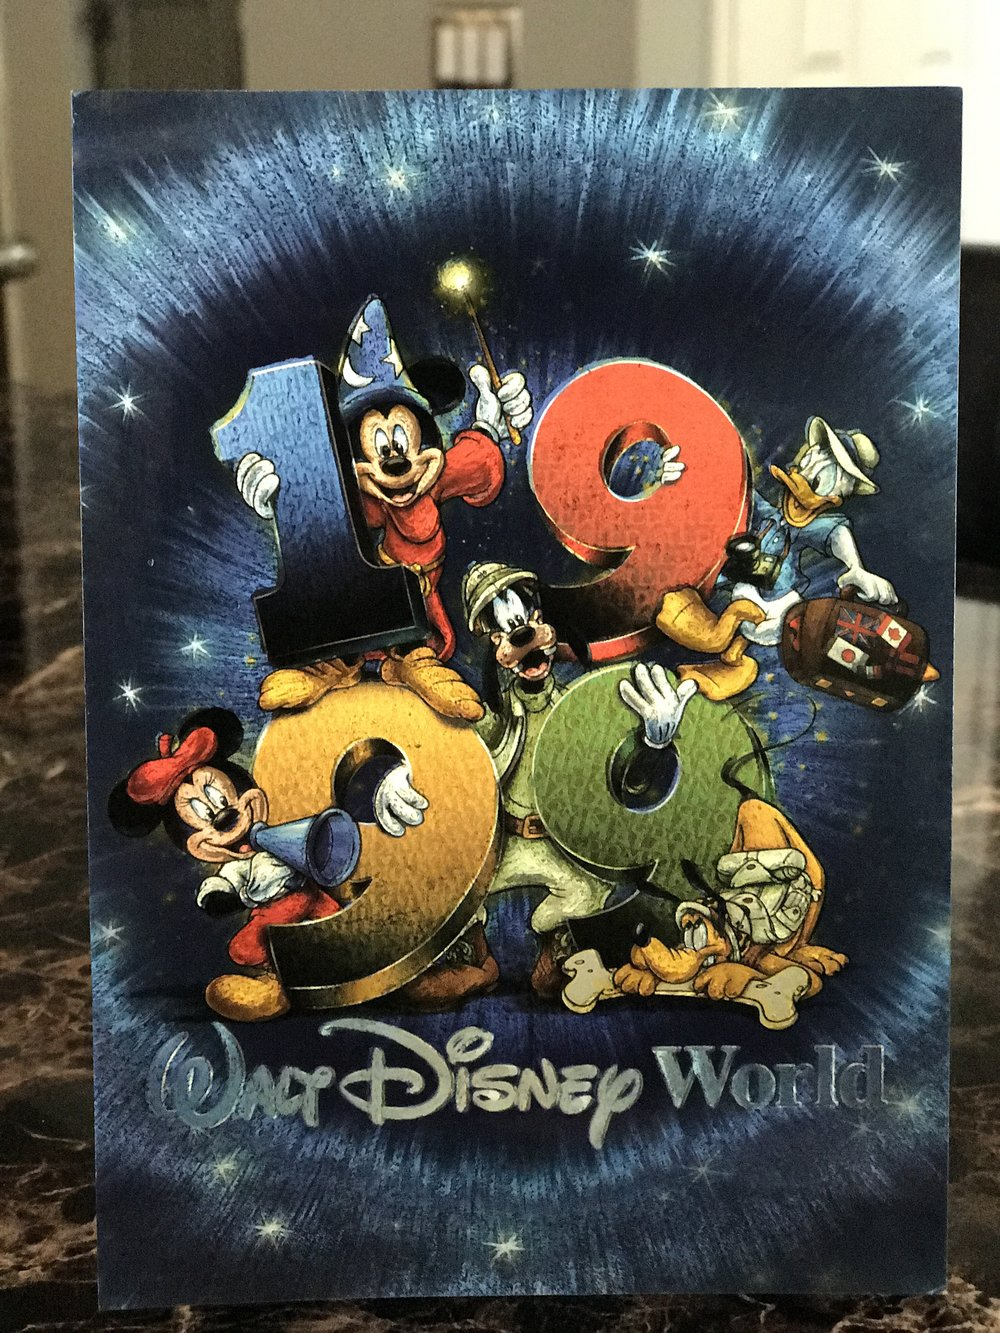 Postcard from Walt Disney World, 1999.